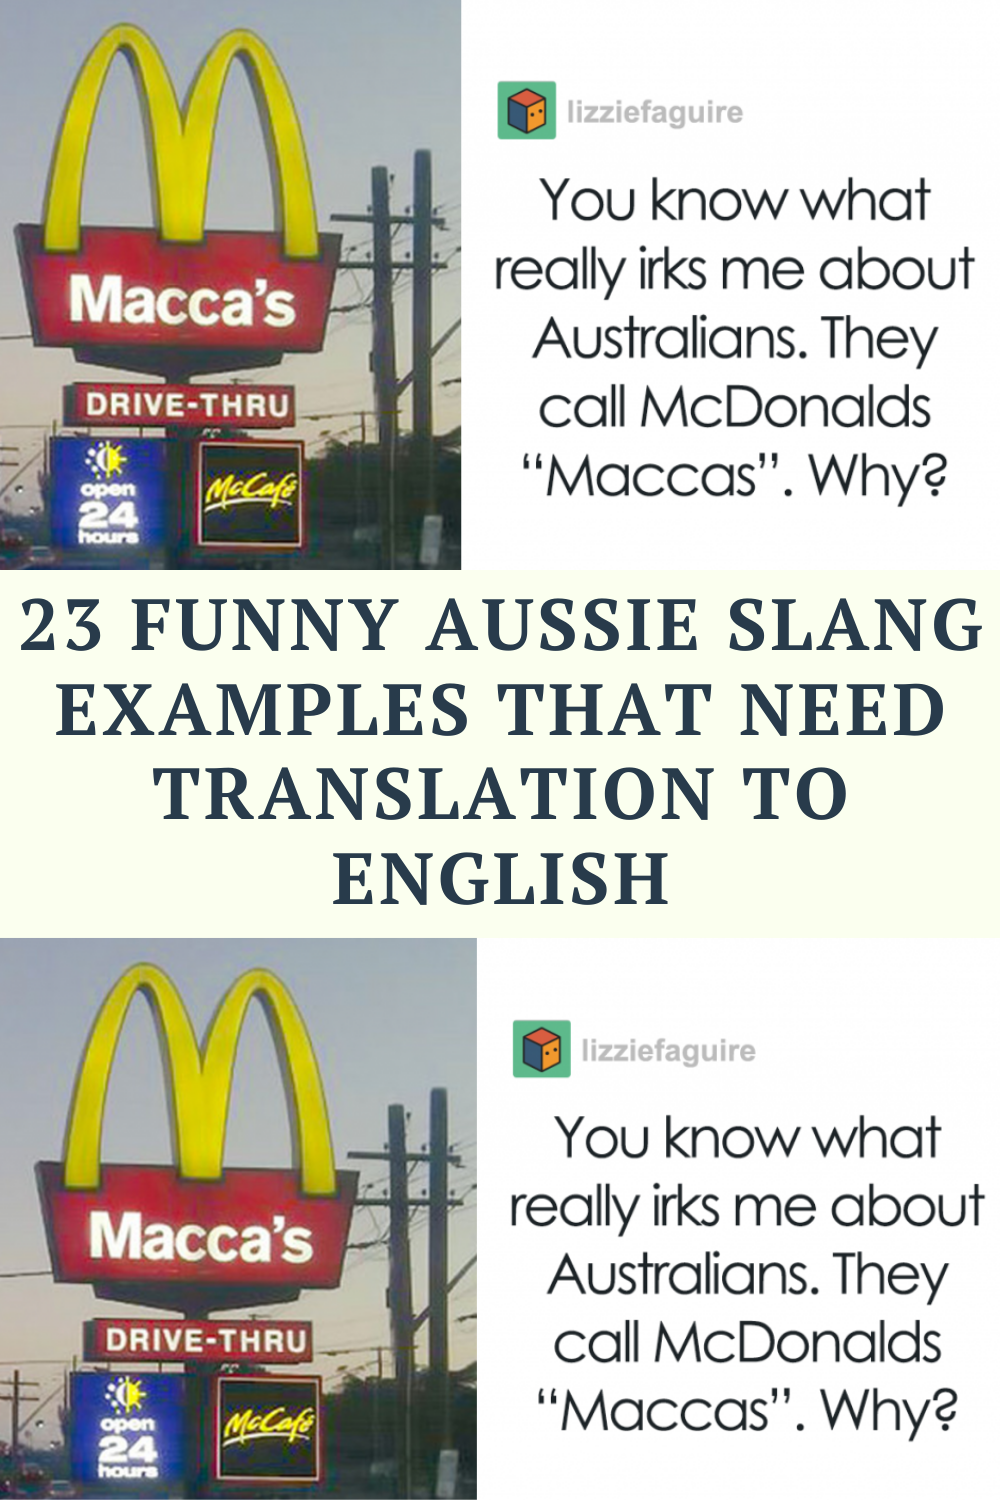 23 Funny Aussie Slang Examples That Need Translation To English In 2020 Funny Aussie Funny Comedy Inspirational Memes